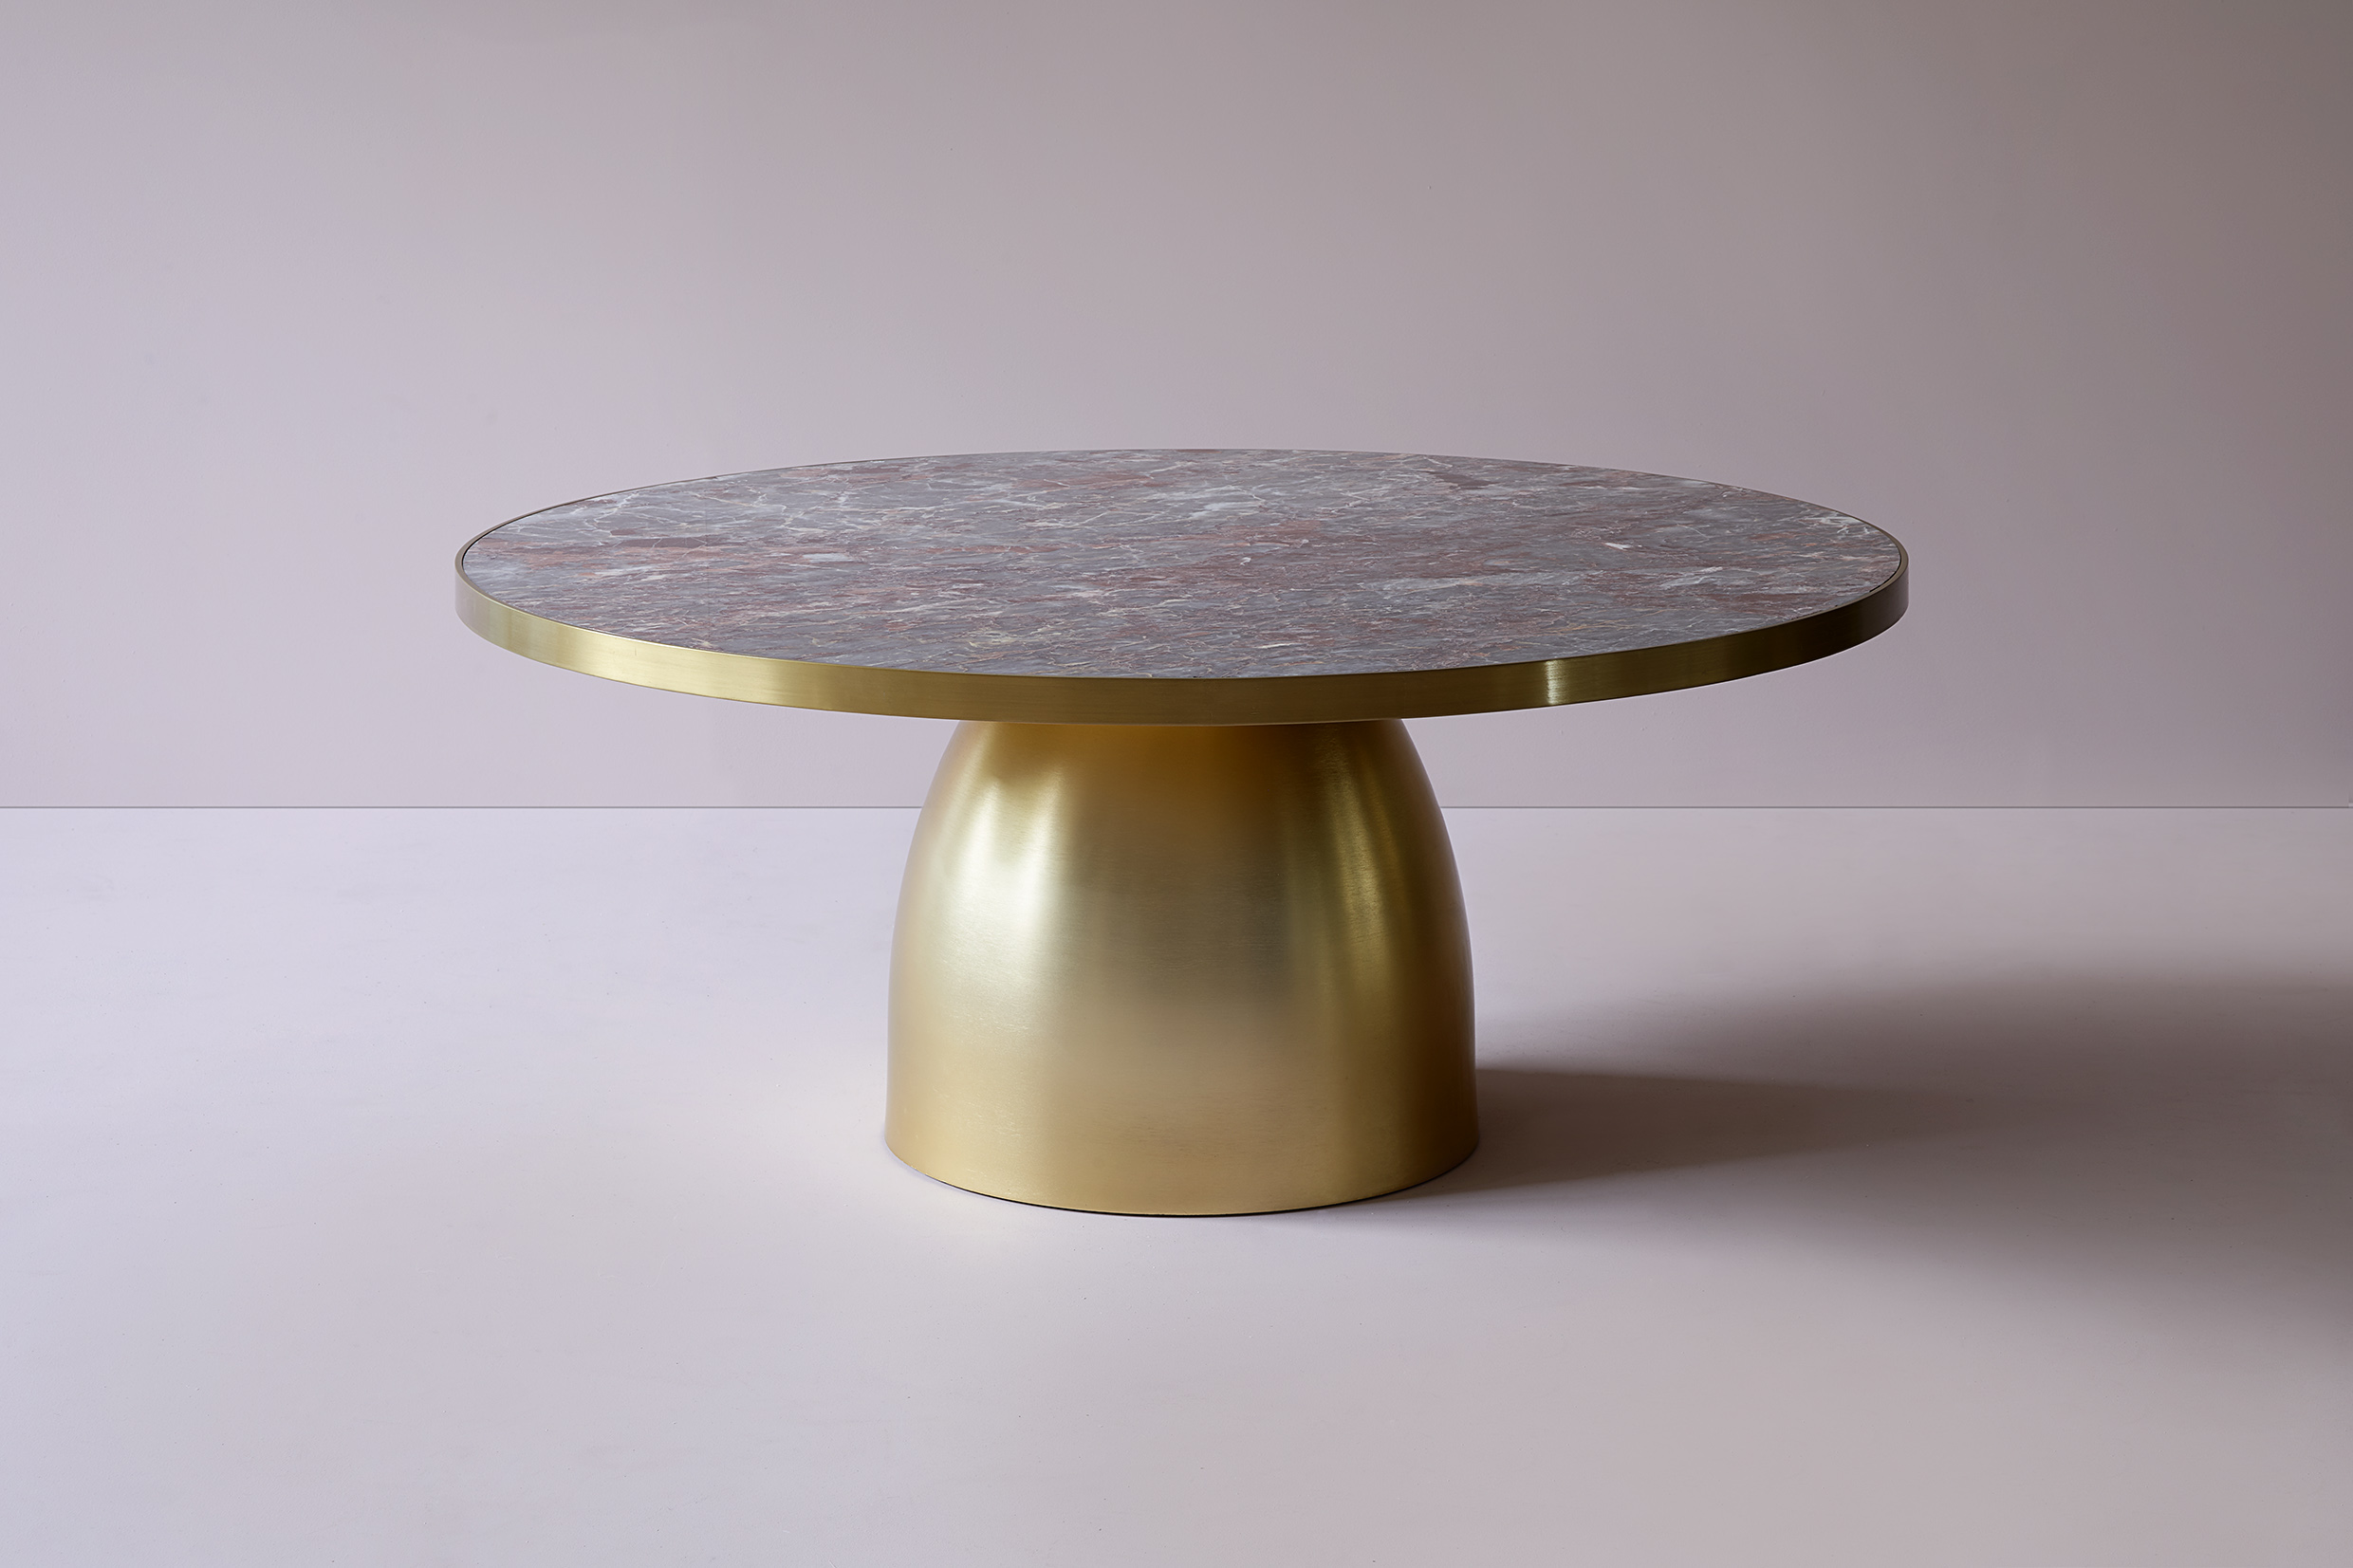 Lustre Round Marble Coffee Table 39 Quot Plain Top Ej Victor